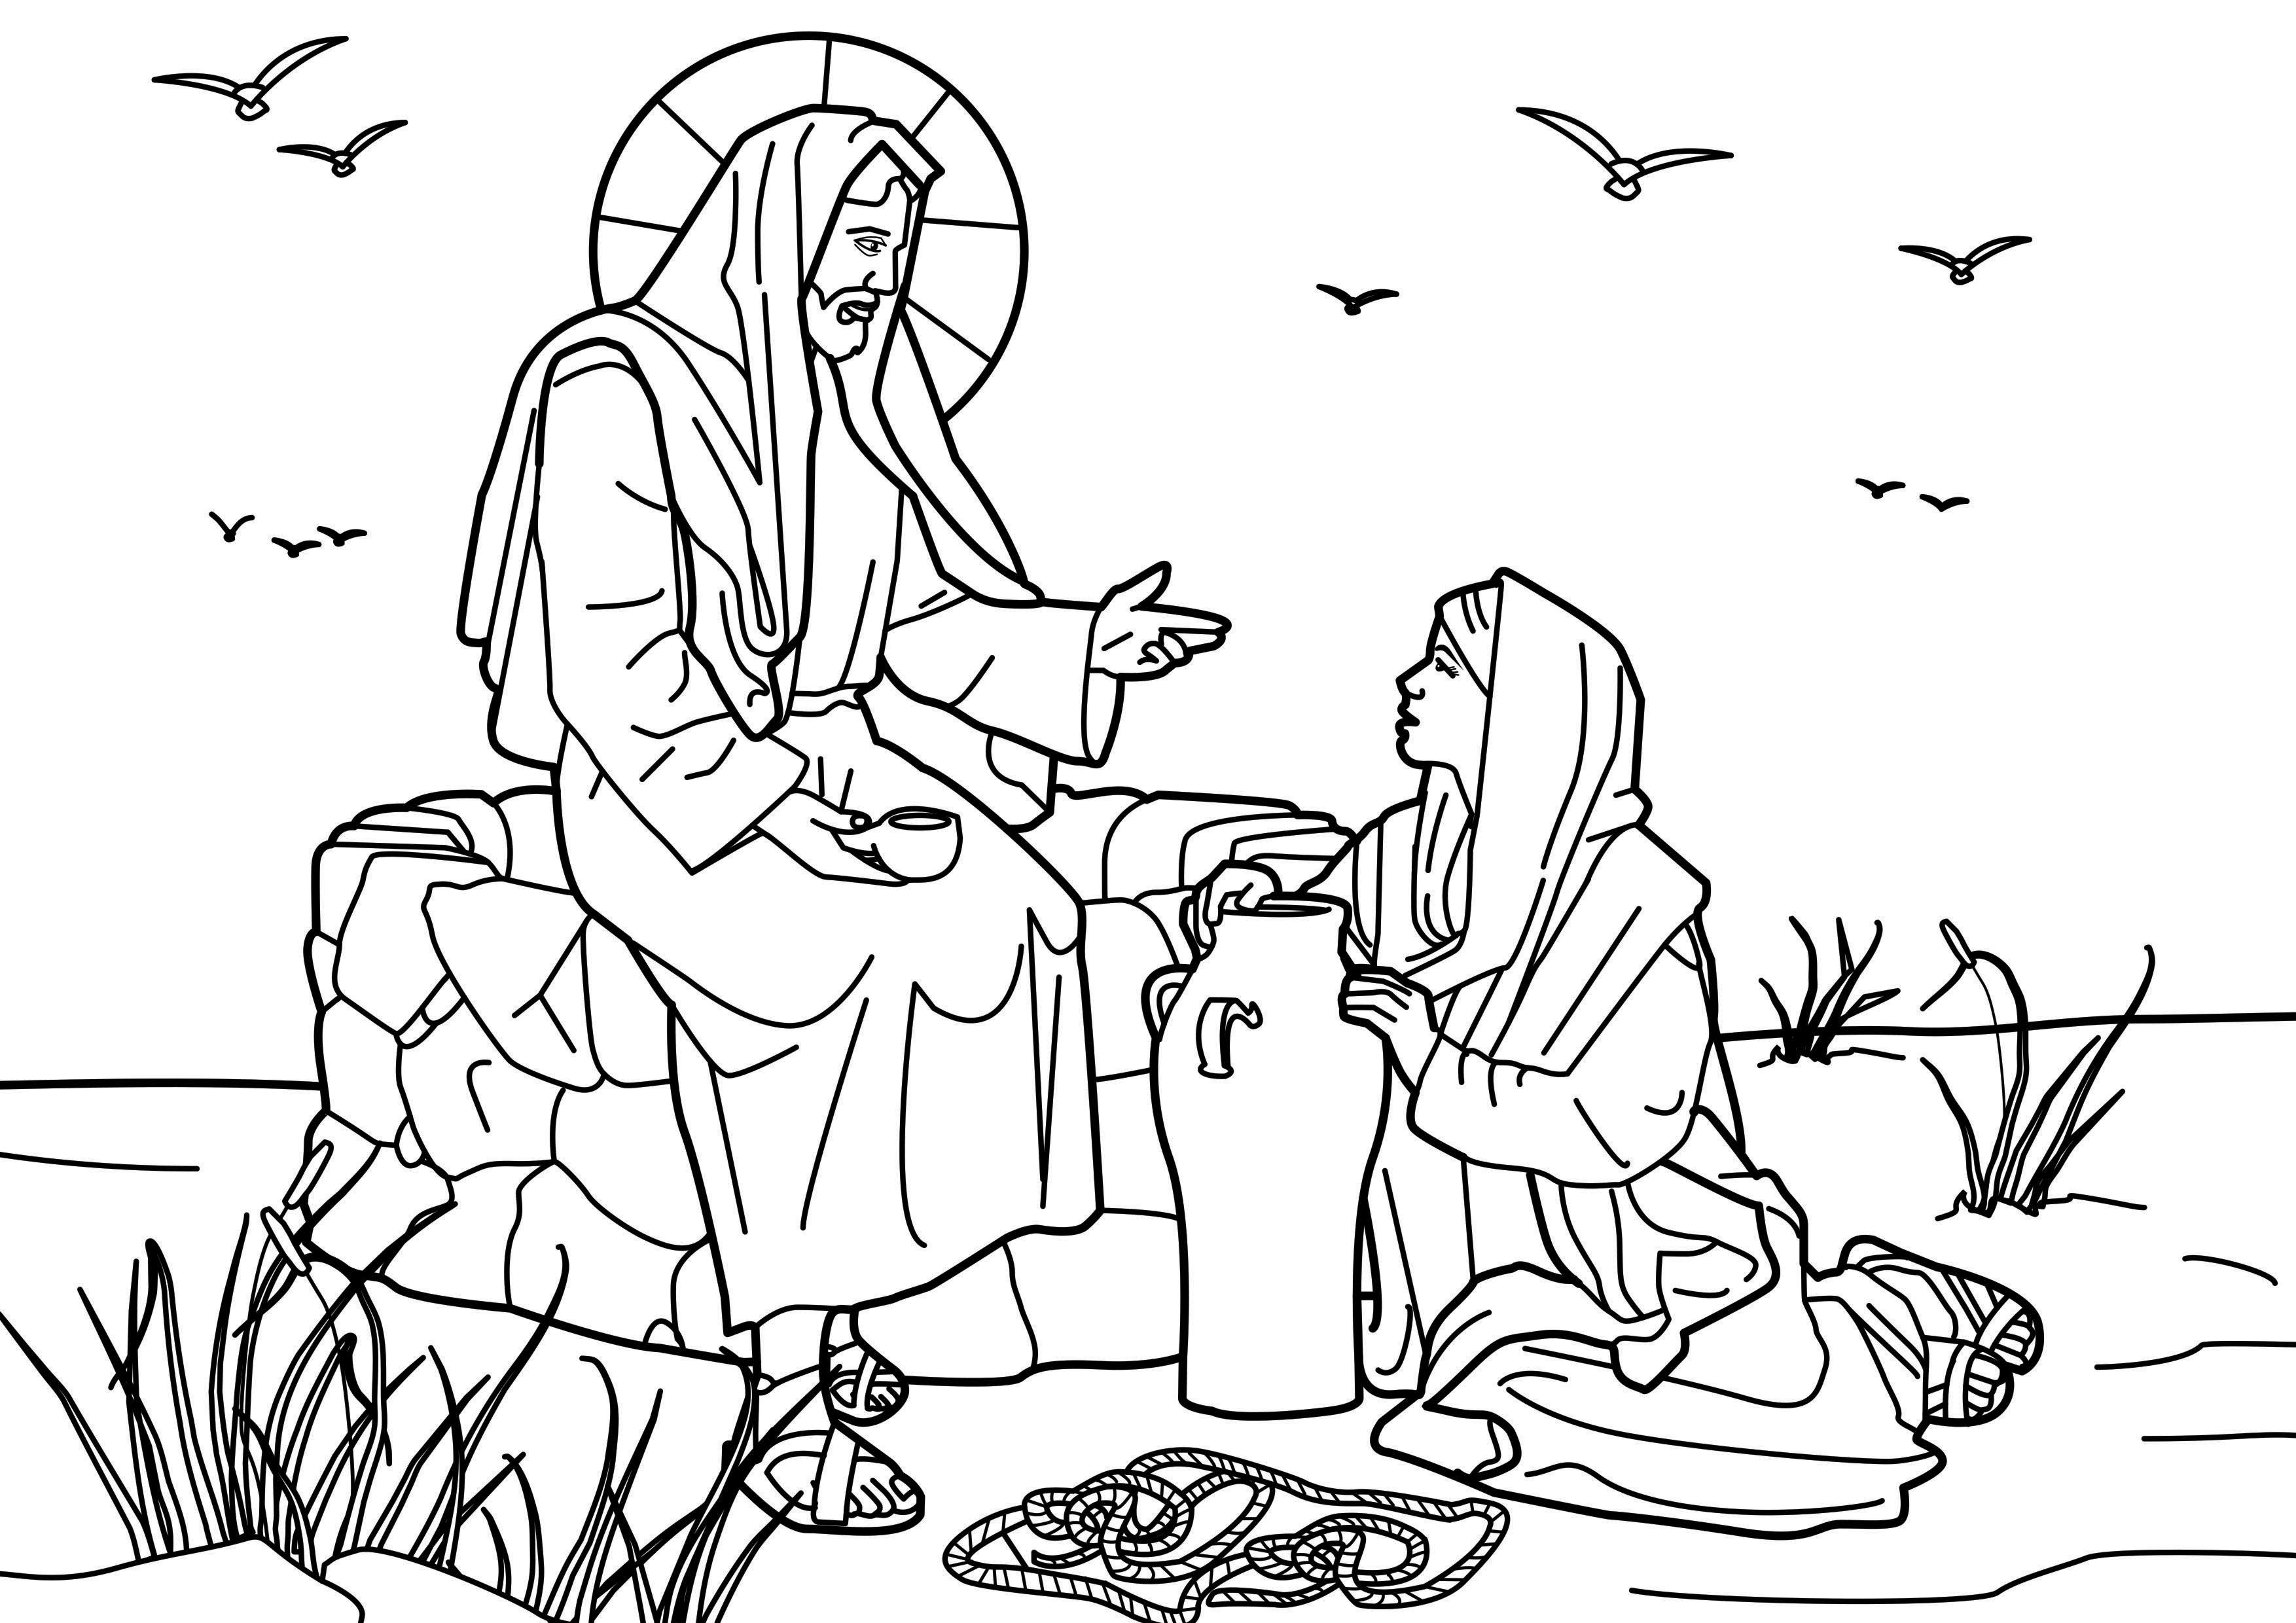 Woman at the Well Coloring Page - Woman at the Well Coloring Pages